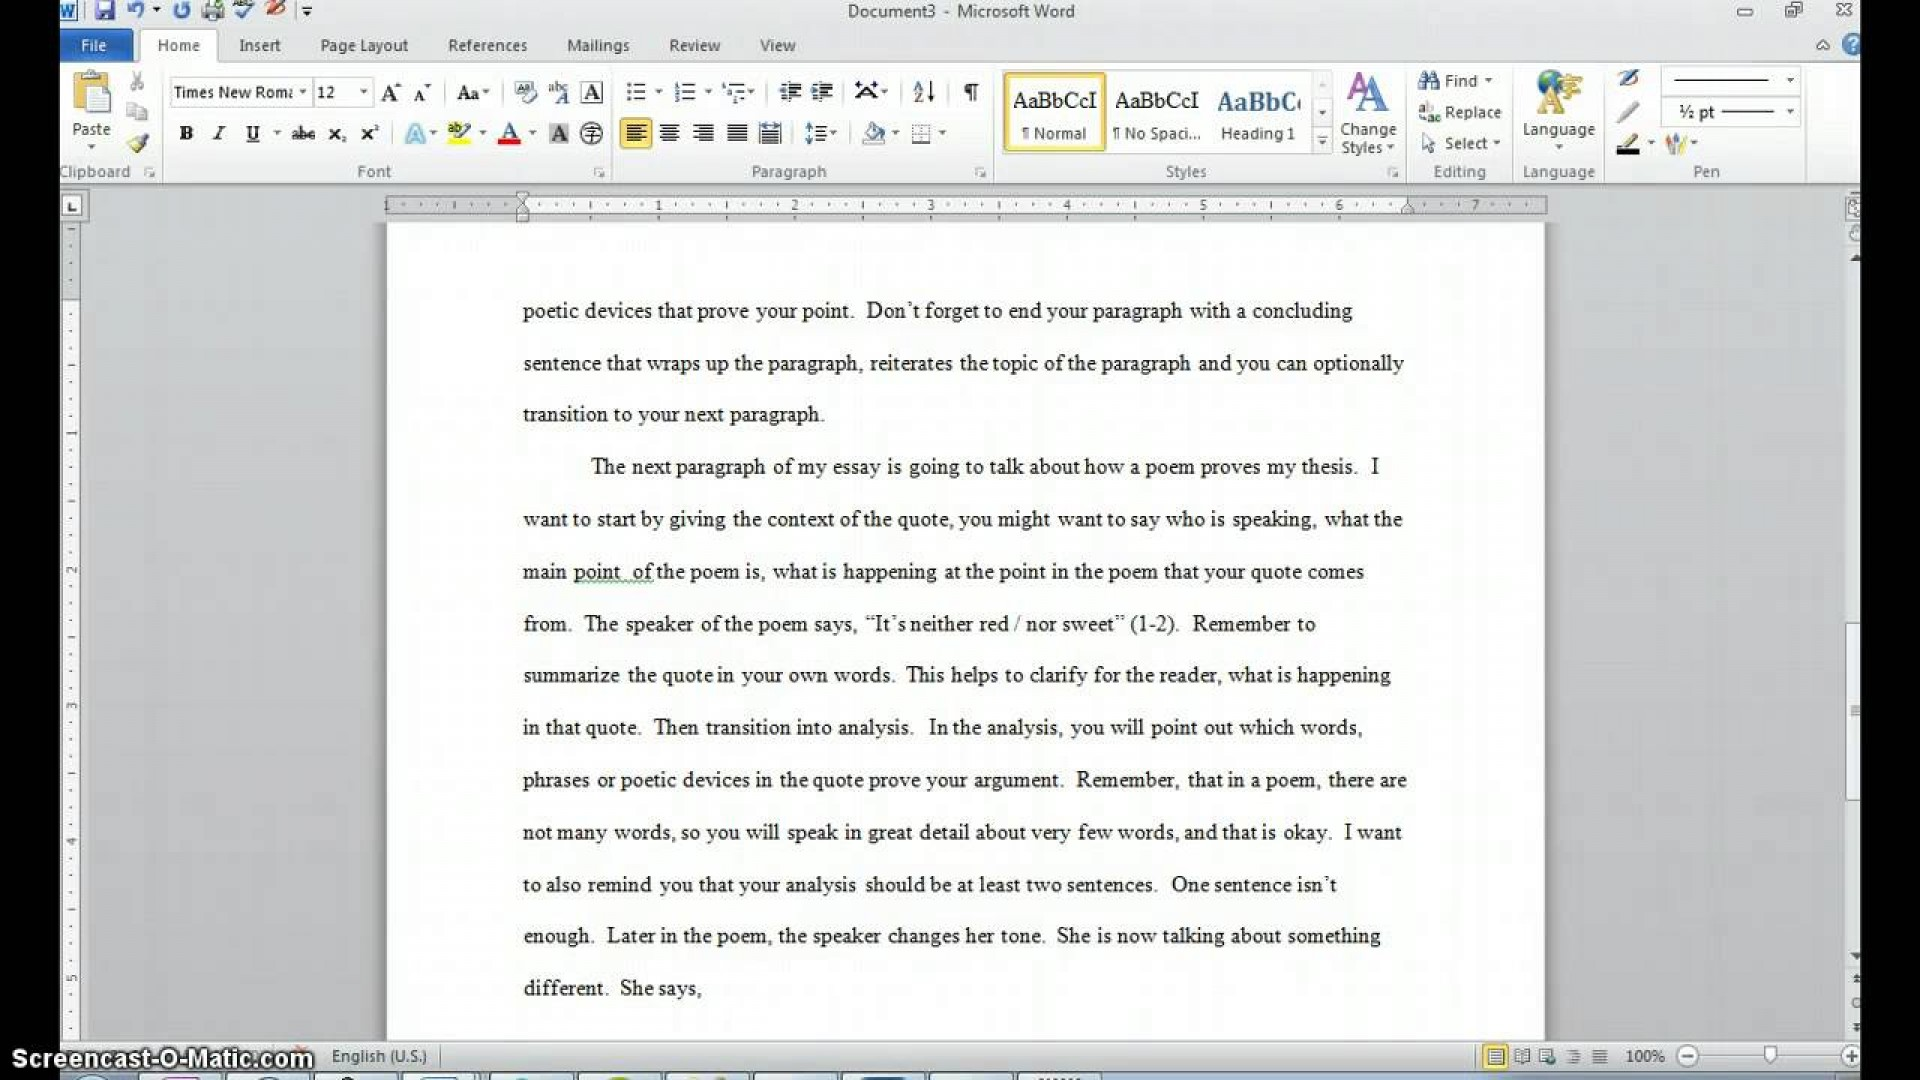 007 Essay Example Maxresdefault How To Quote Play In Top A An Dialogue From Do You Lines Mla 1920